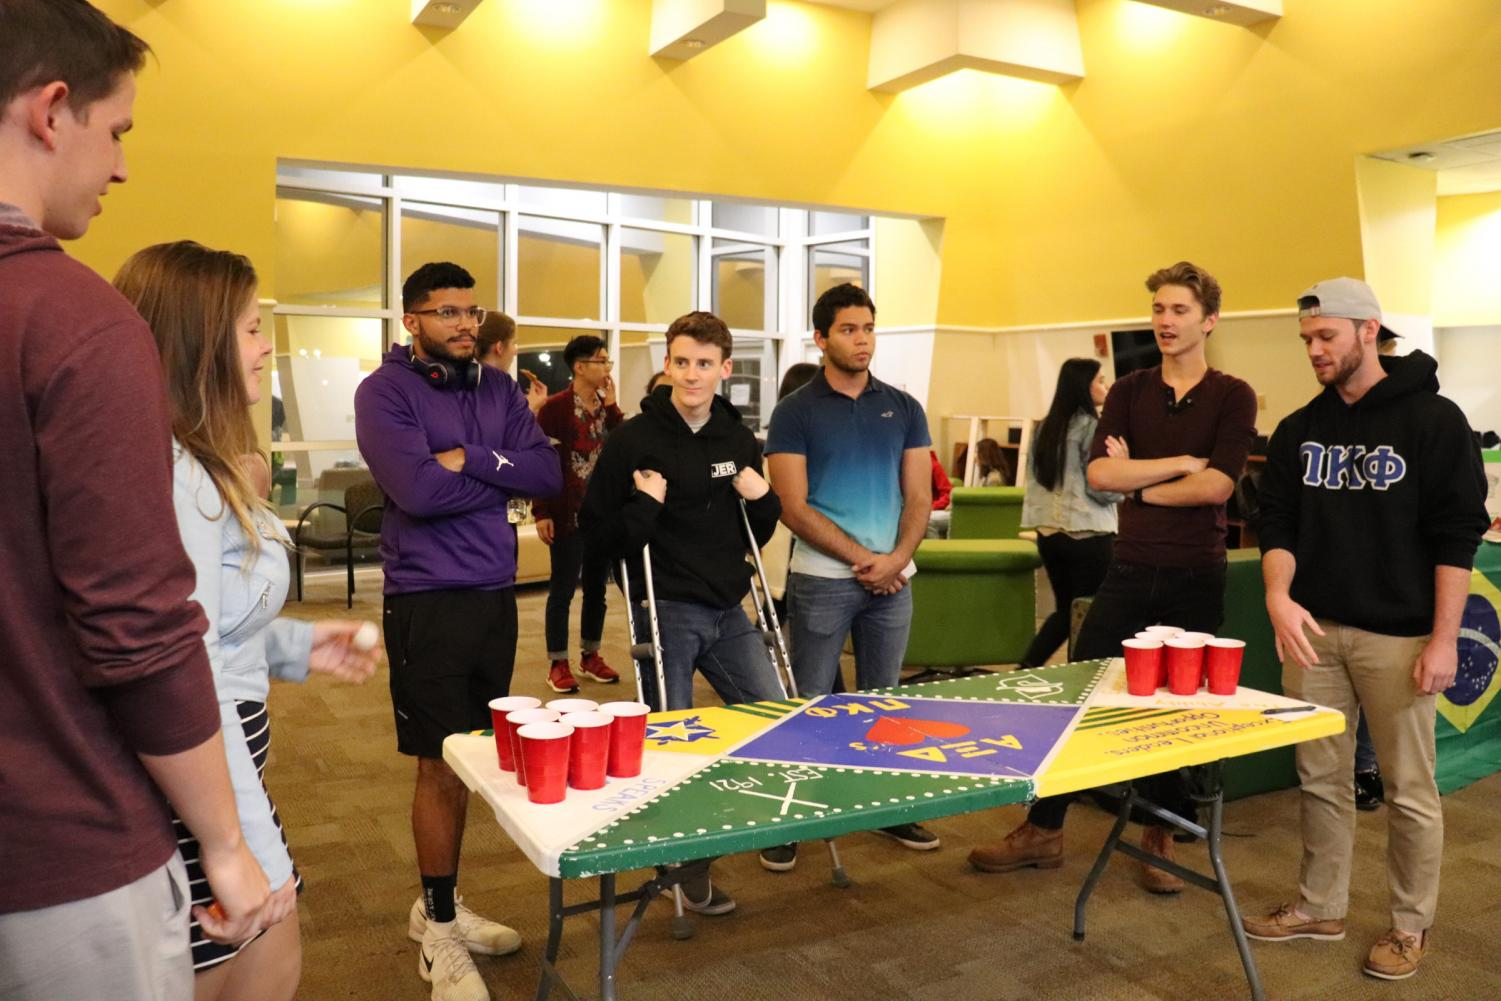 Water+pong+at+the+International+Game+Tournament.